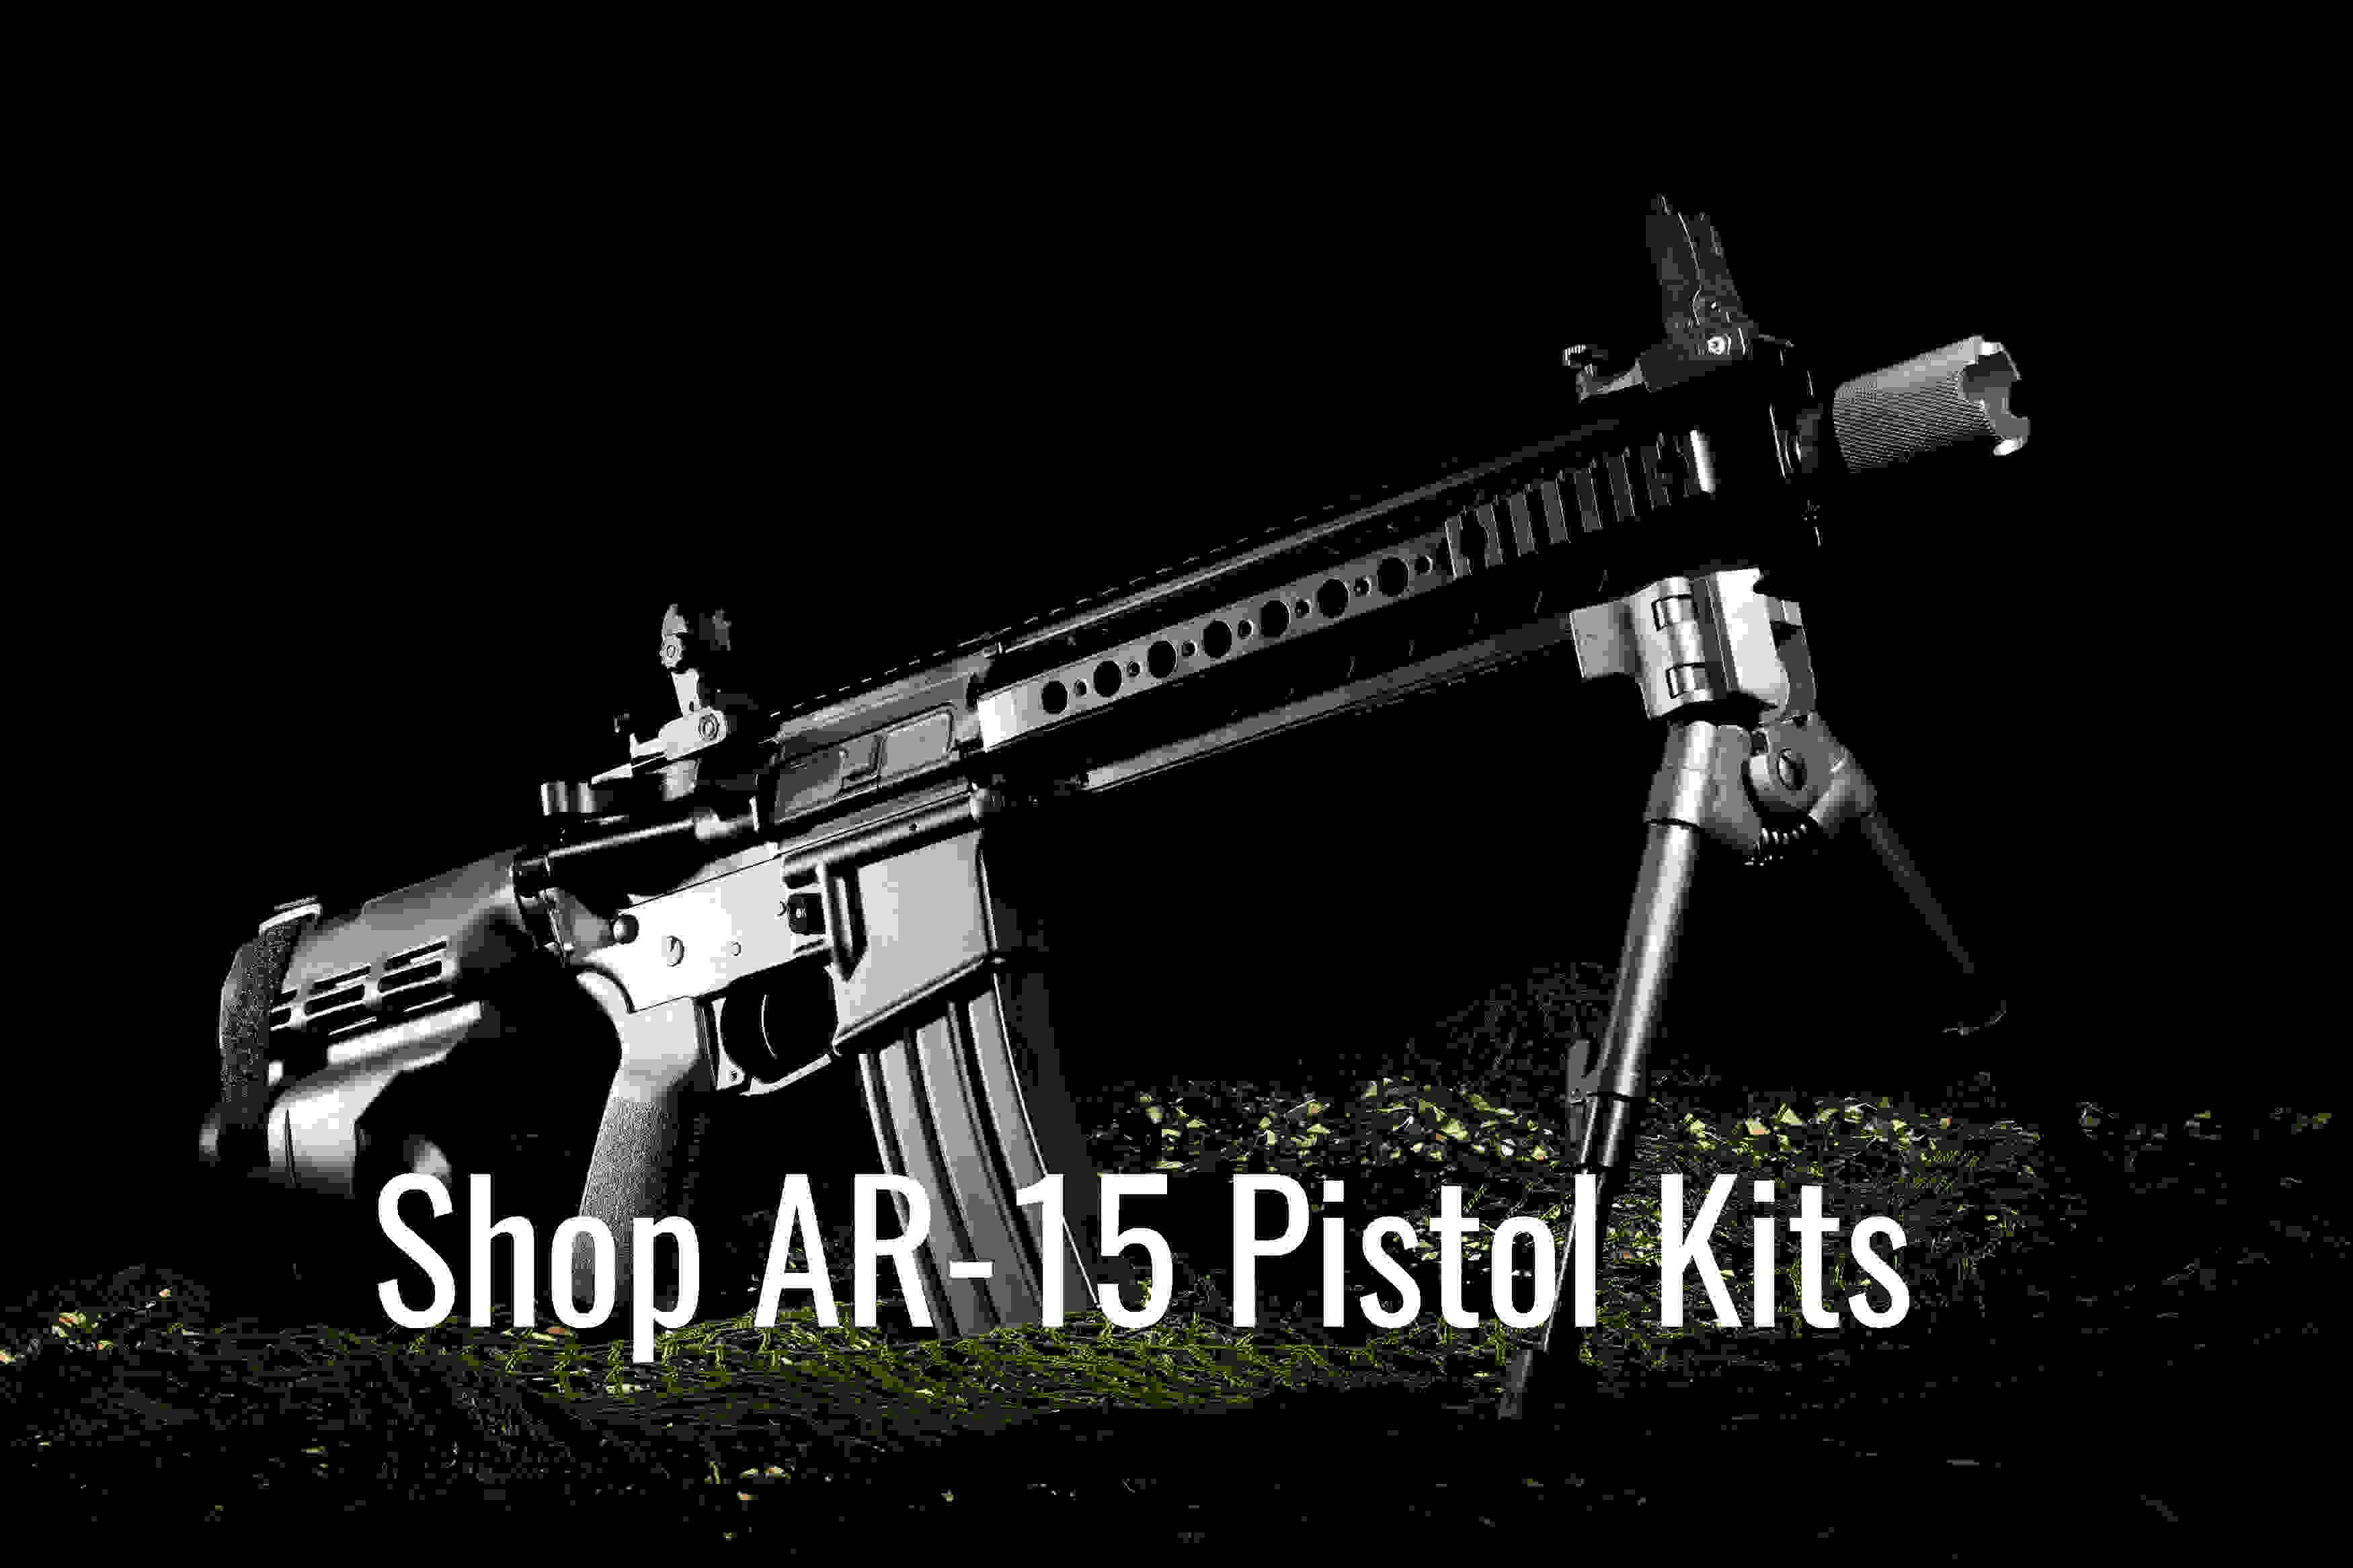 Shop AR Pistol Kits - Blog Featured Image